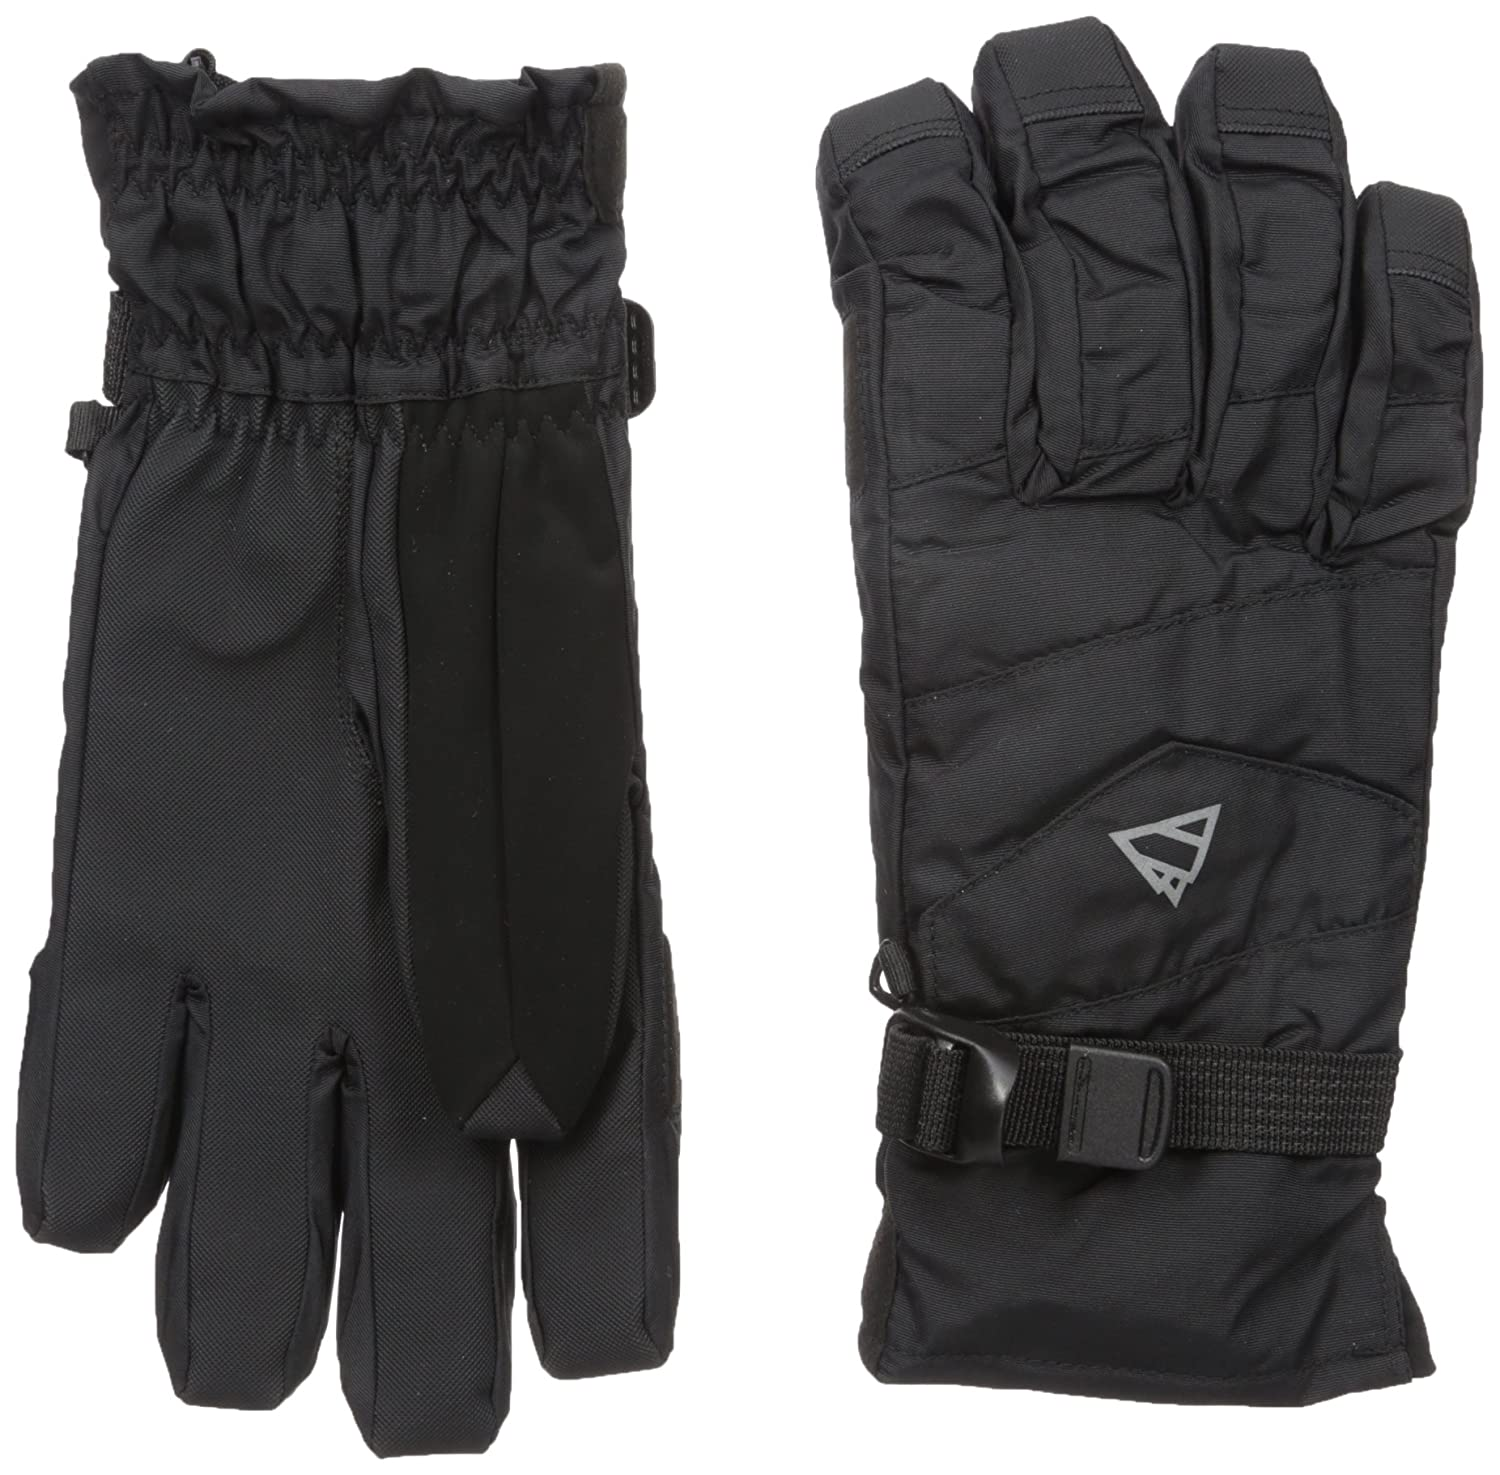 1d72e490026bd Amazon.com: GII Men's 2-in-1 Ski Gloves with Thinsulate Insulation and  Removable Fleece Liner: Clothing